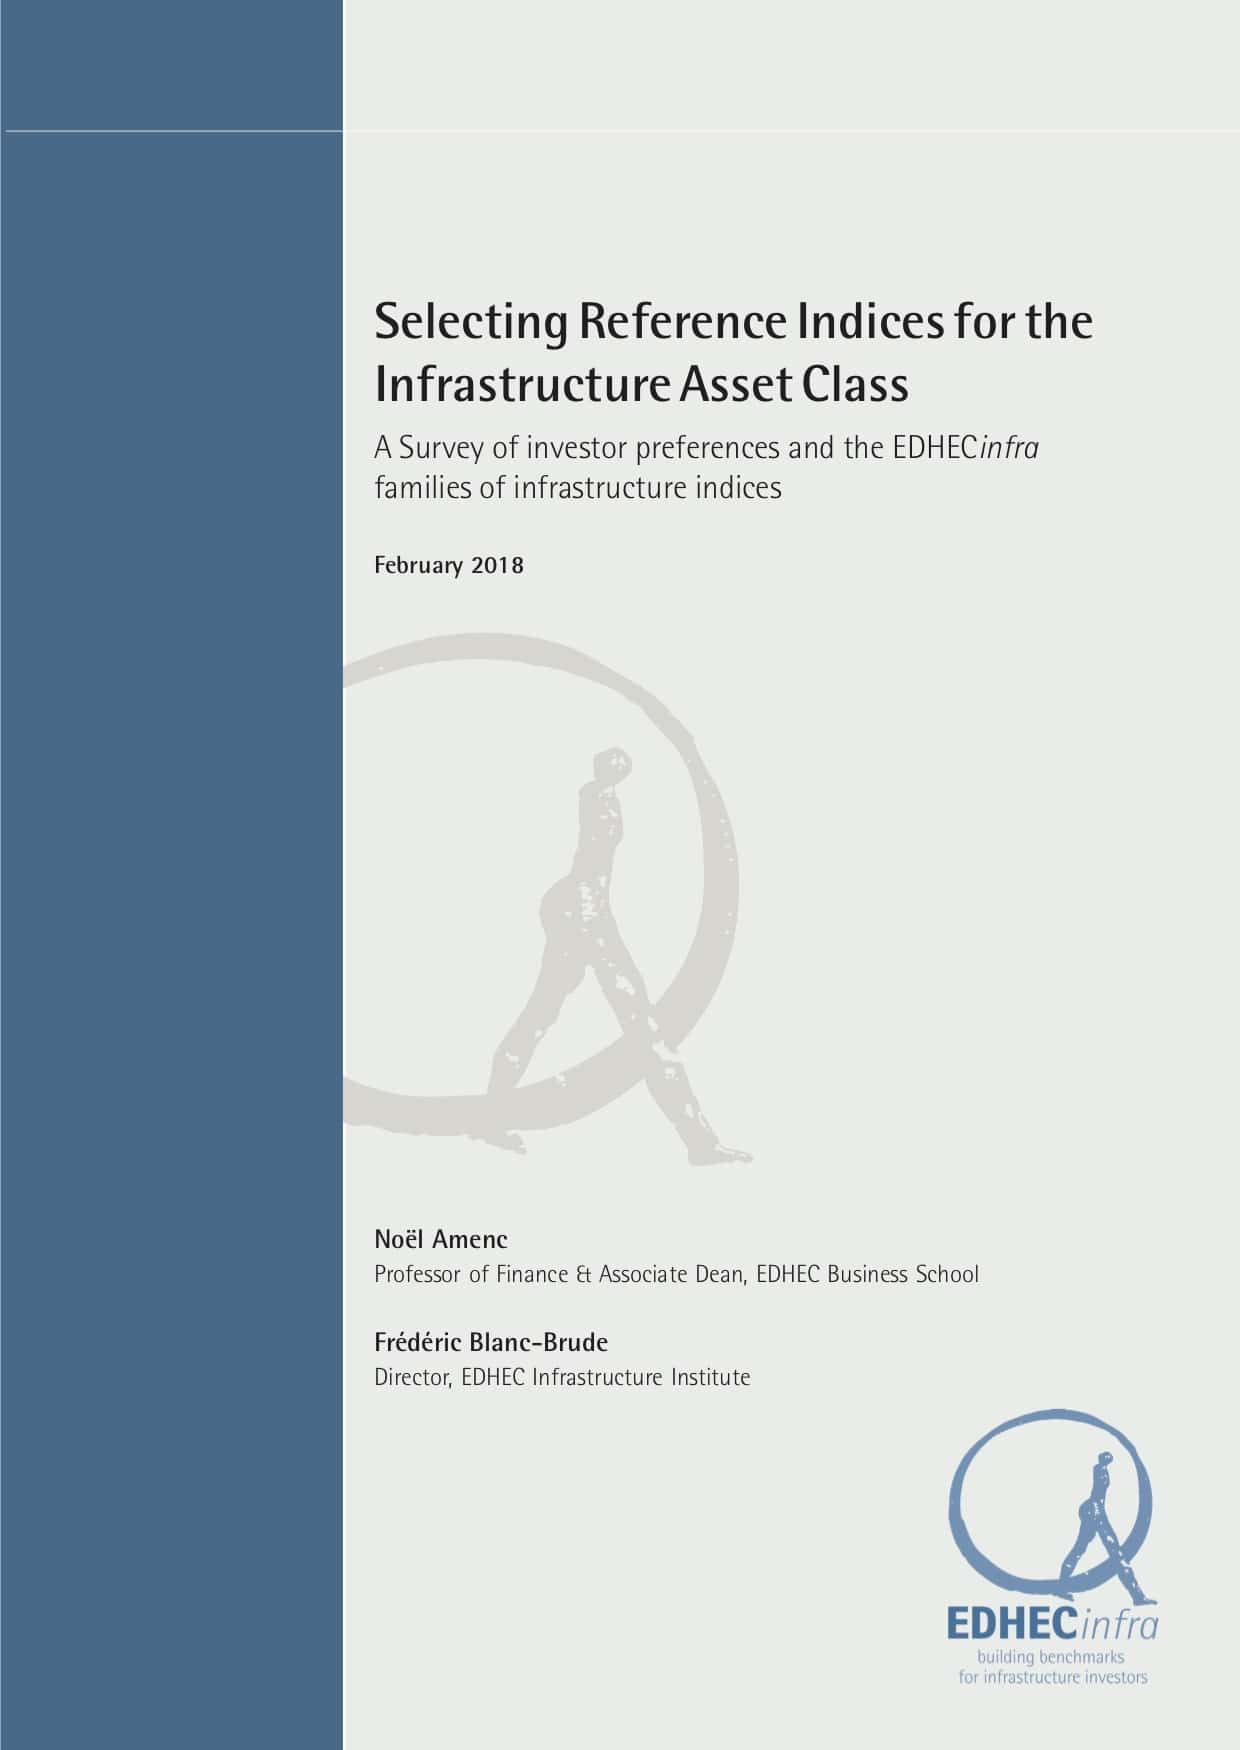 Selecting Reference Indices for the Infrastructure Asset Class